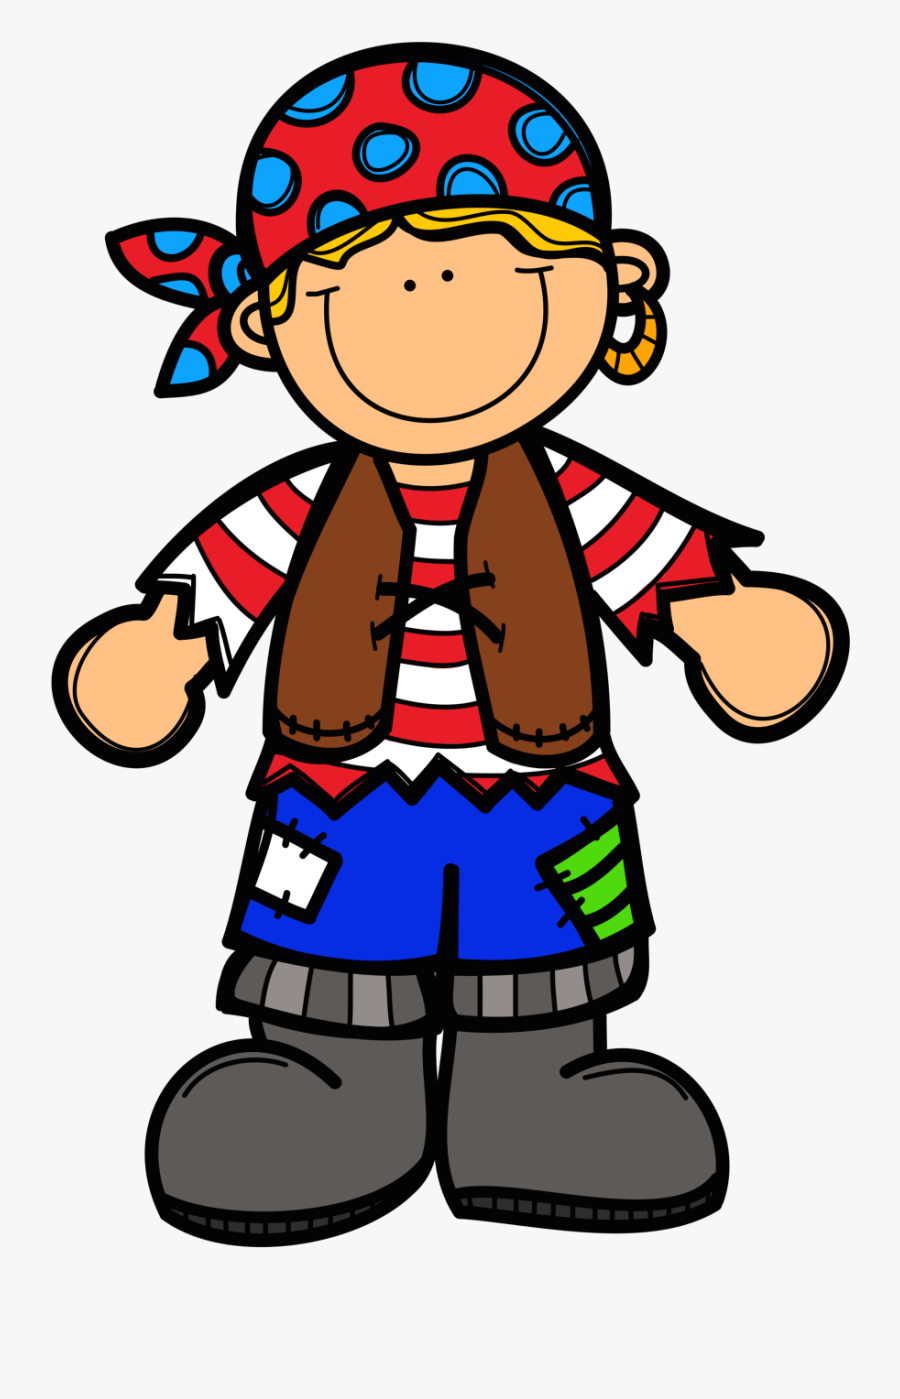 Vintage Clipart Of Did You Know There Is - Ar Bossy R Pirate, Transparent Clipart